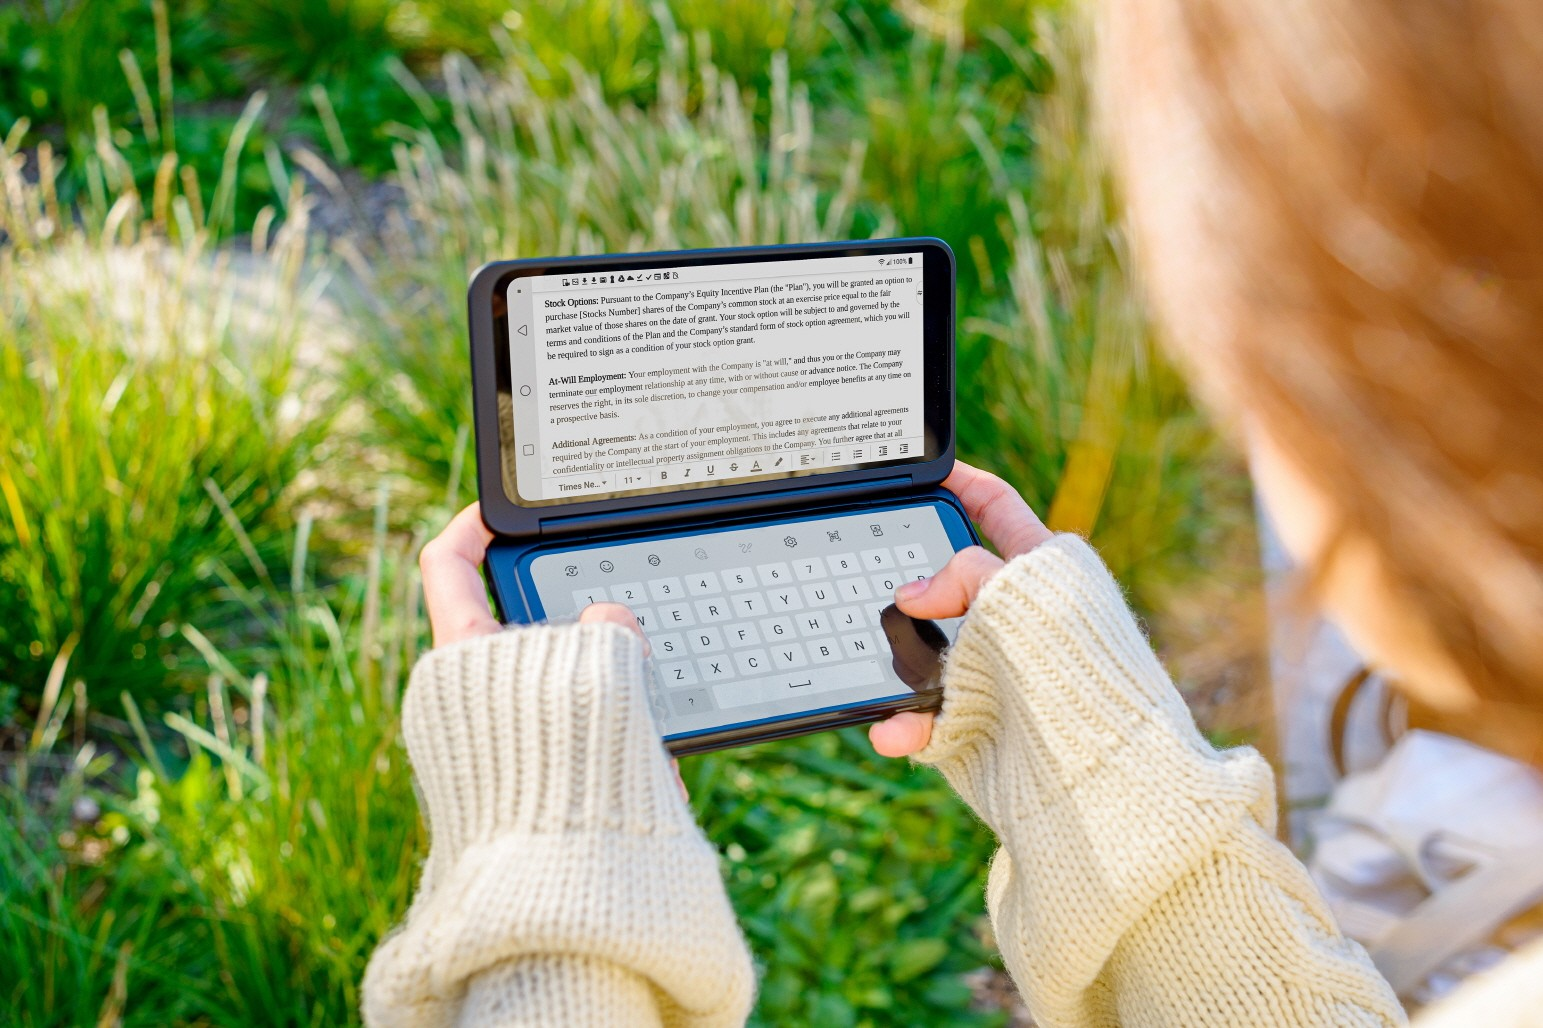 LG rolls out new dual screen ThinQ